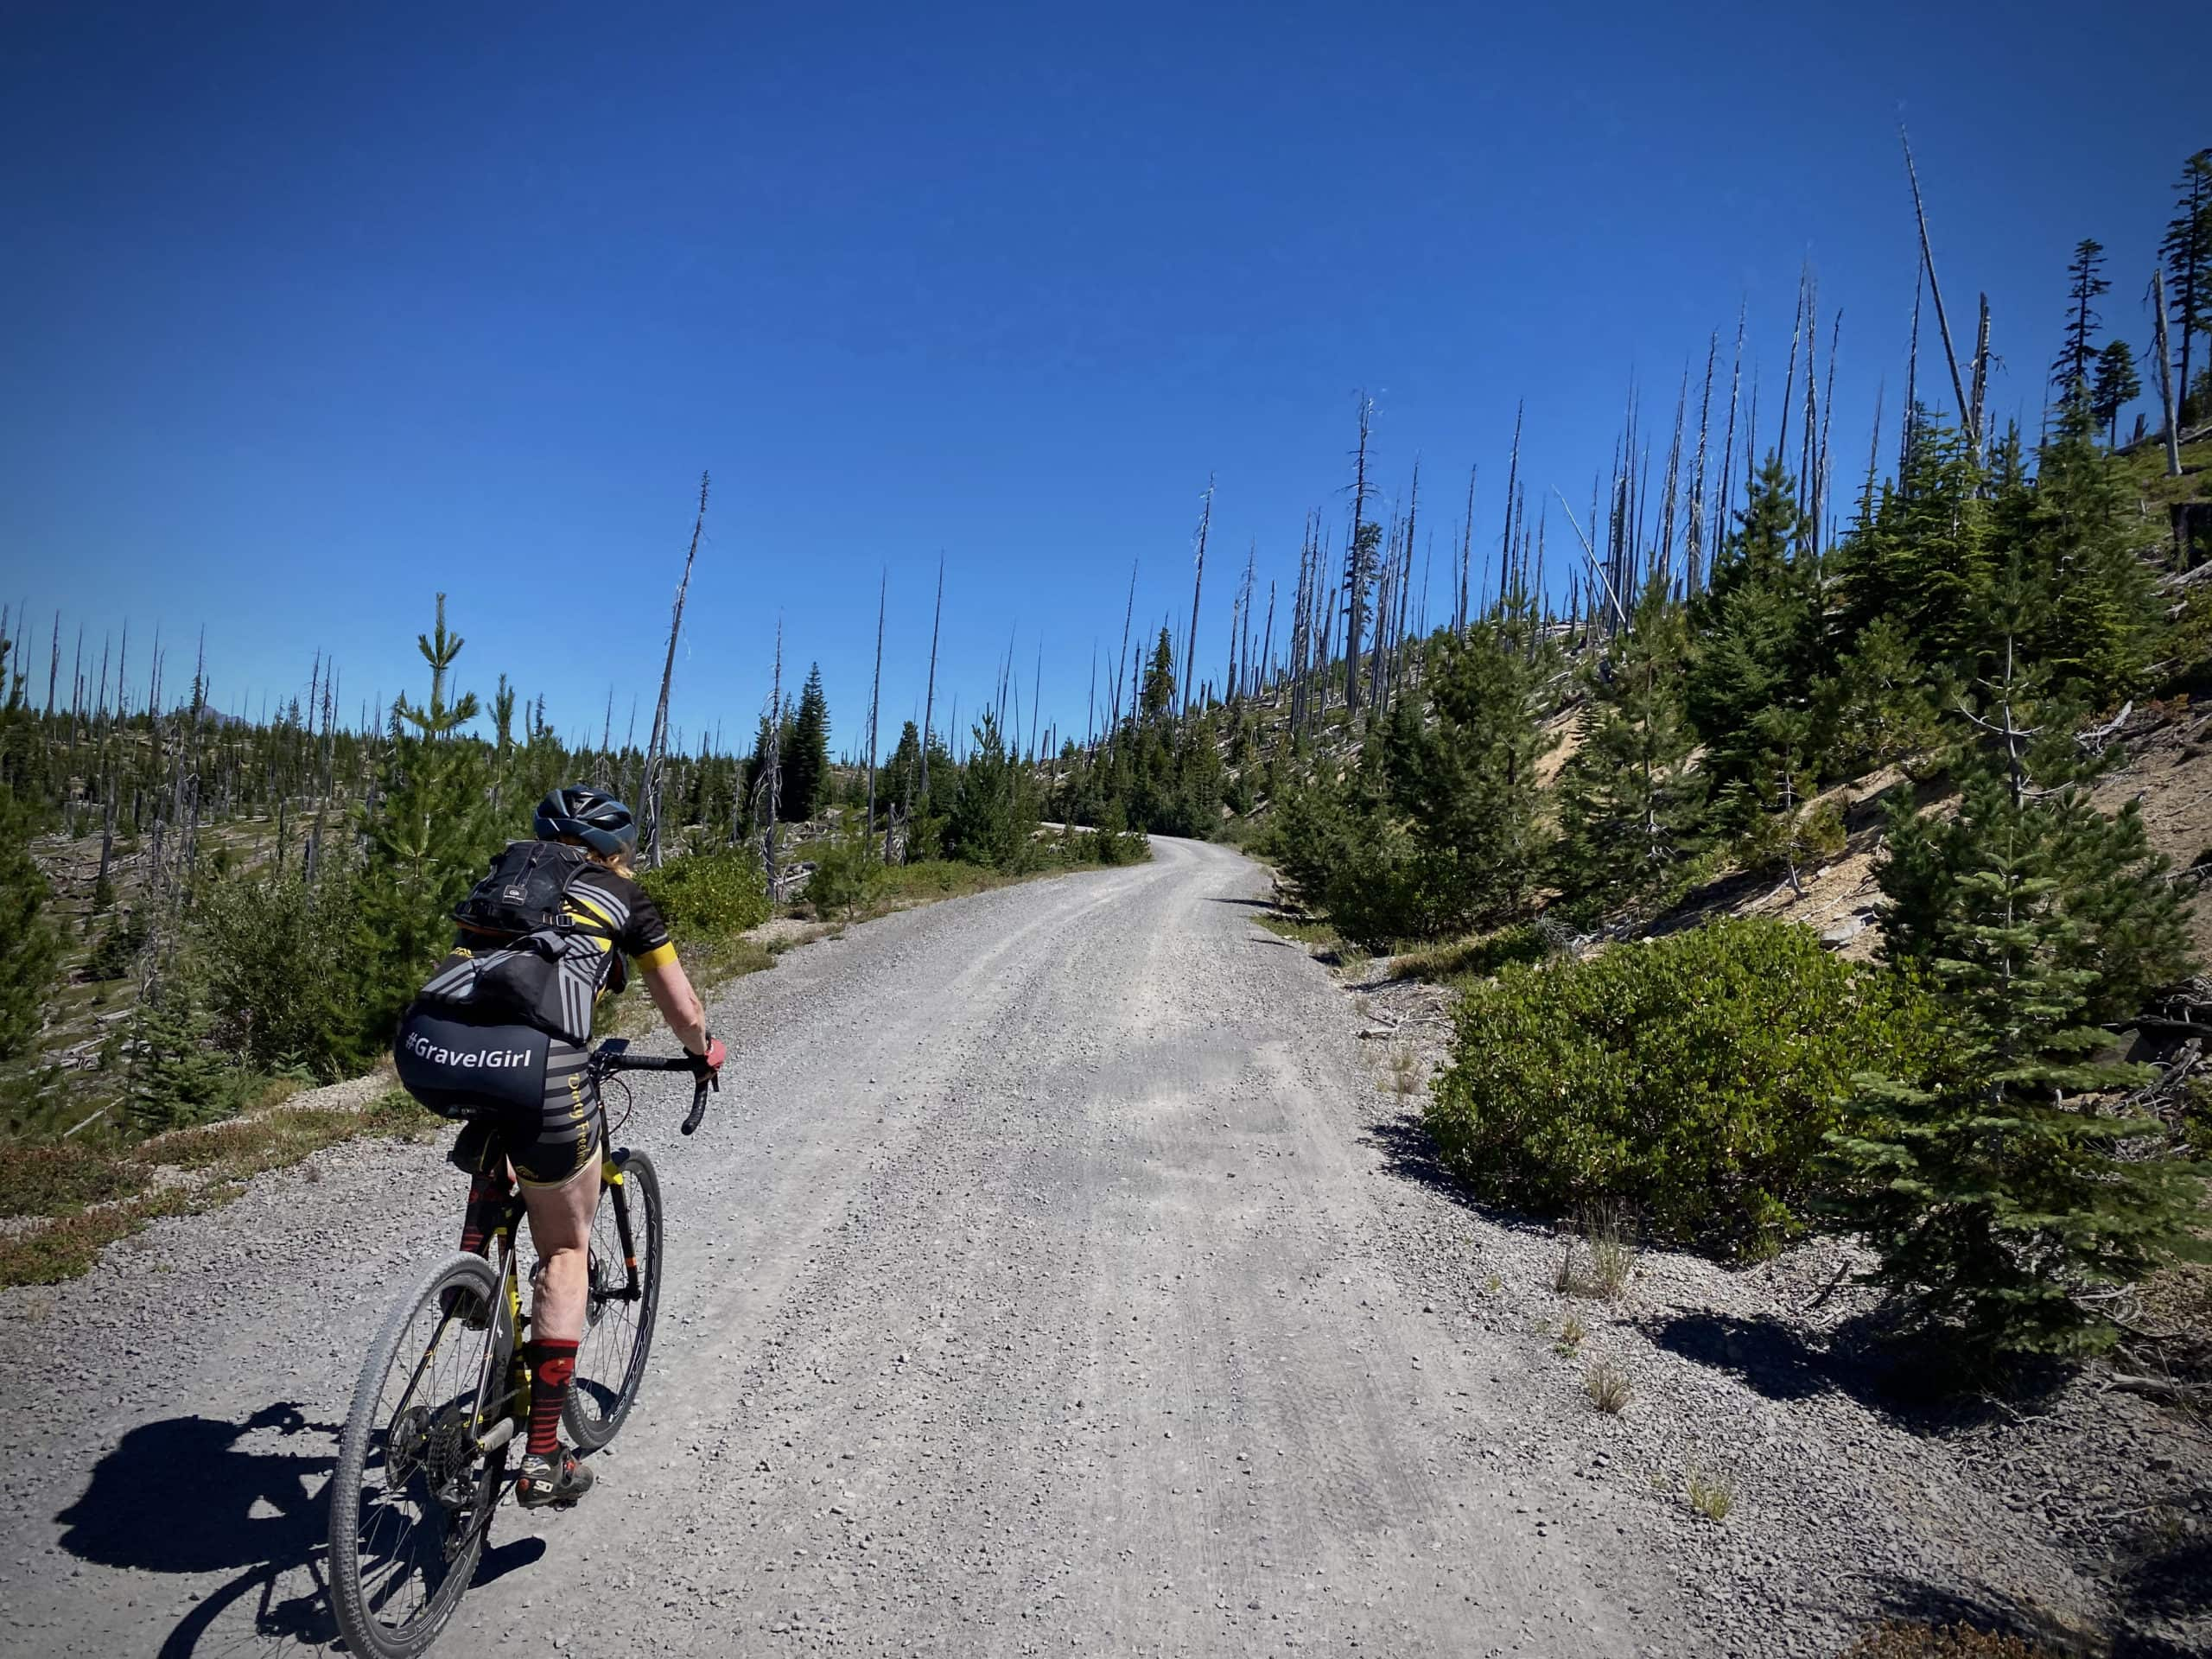 Gravel Girl riding through an old burned forest with Diamond Peak in the distance.